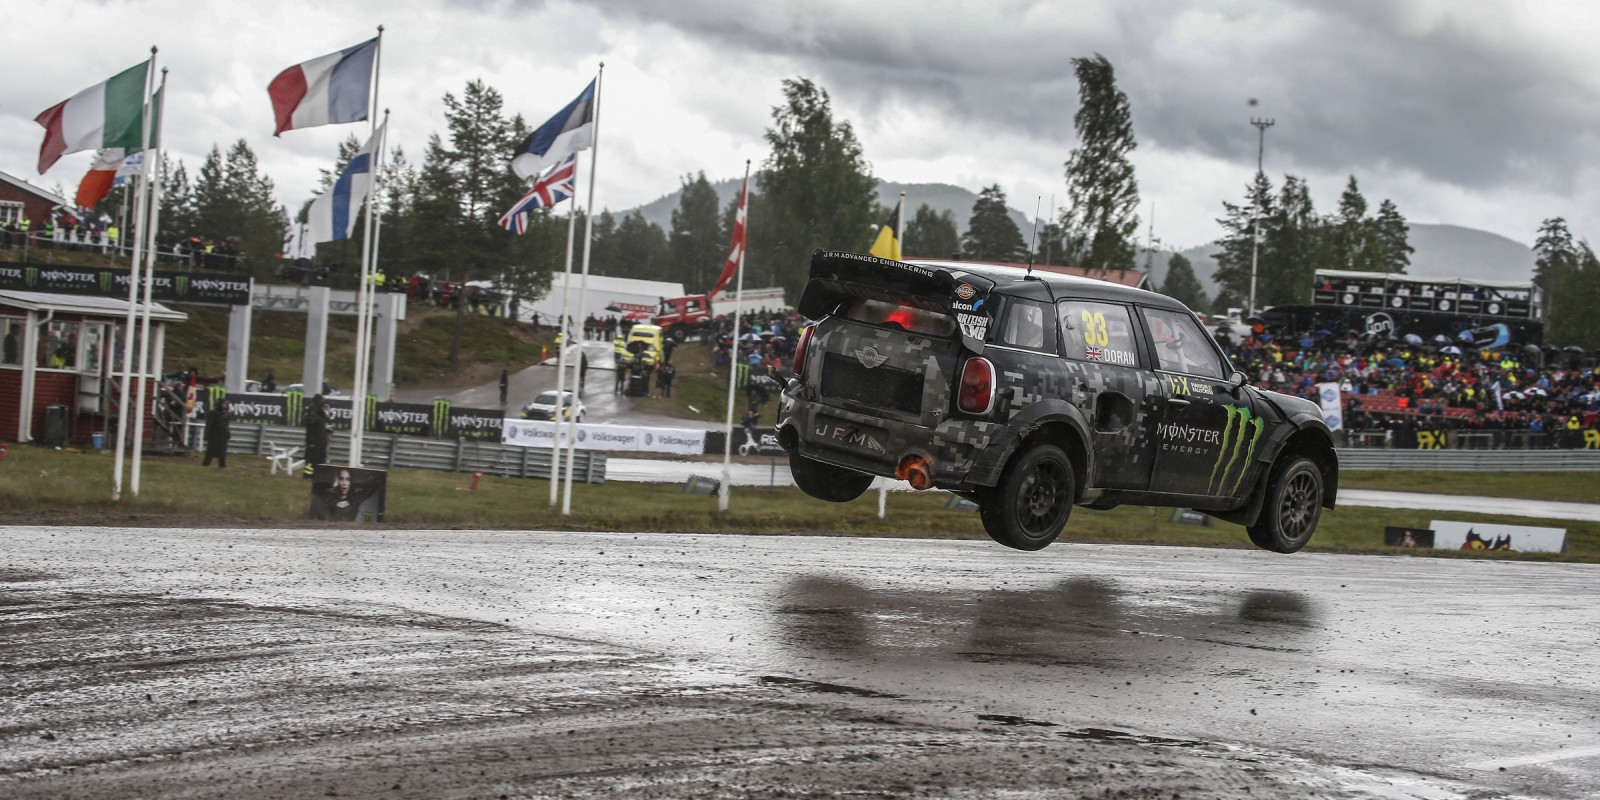 Saturday Images from the 2016 World RX of Sweden